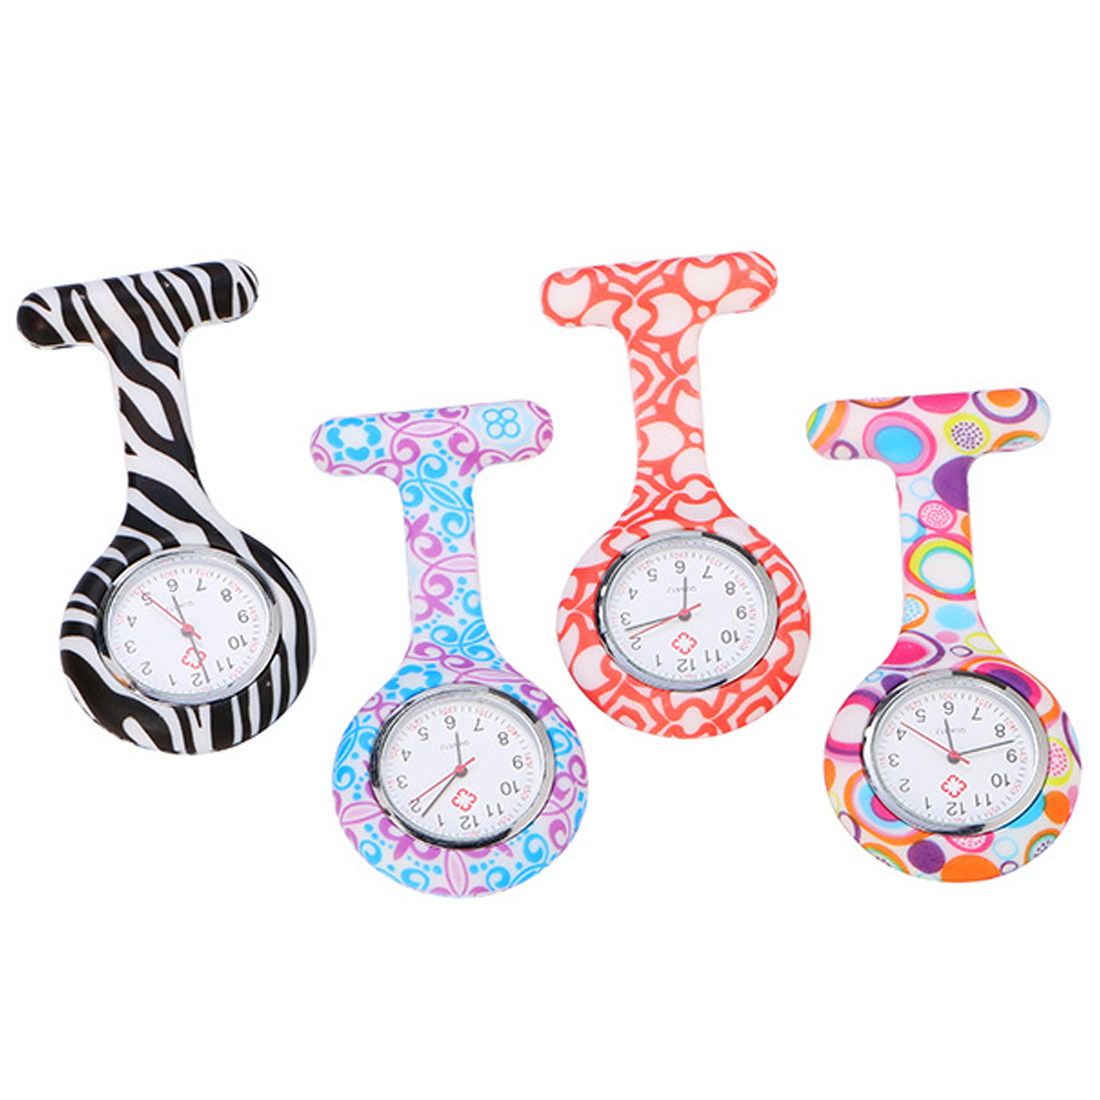 Silicone  Nurses  Watch Infection Control Hygienic Clip-on Pin Fob Brooch Pocket Watch For Women